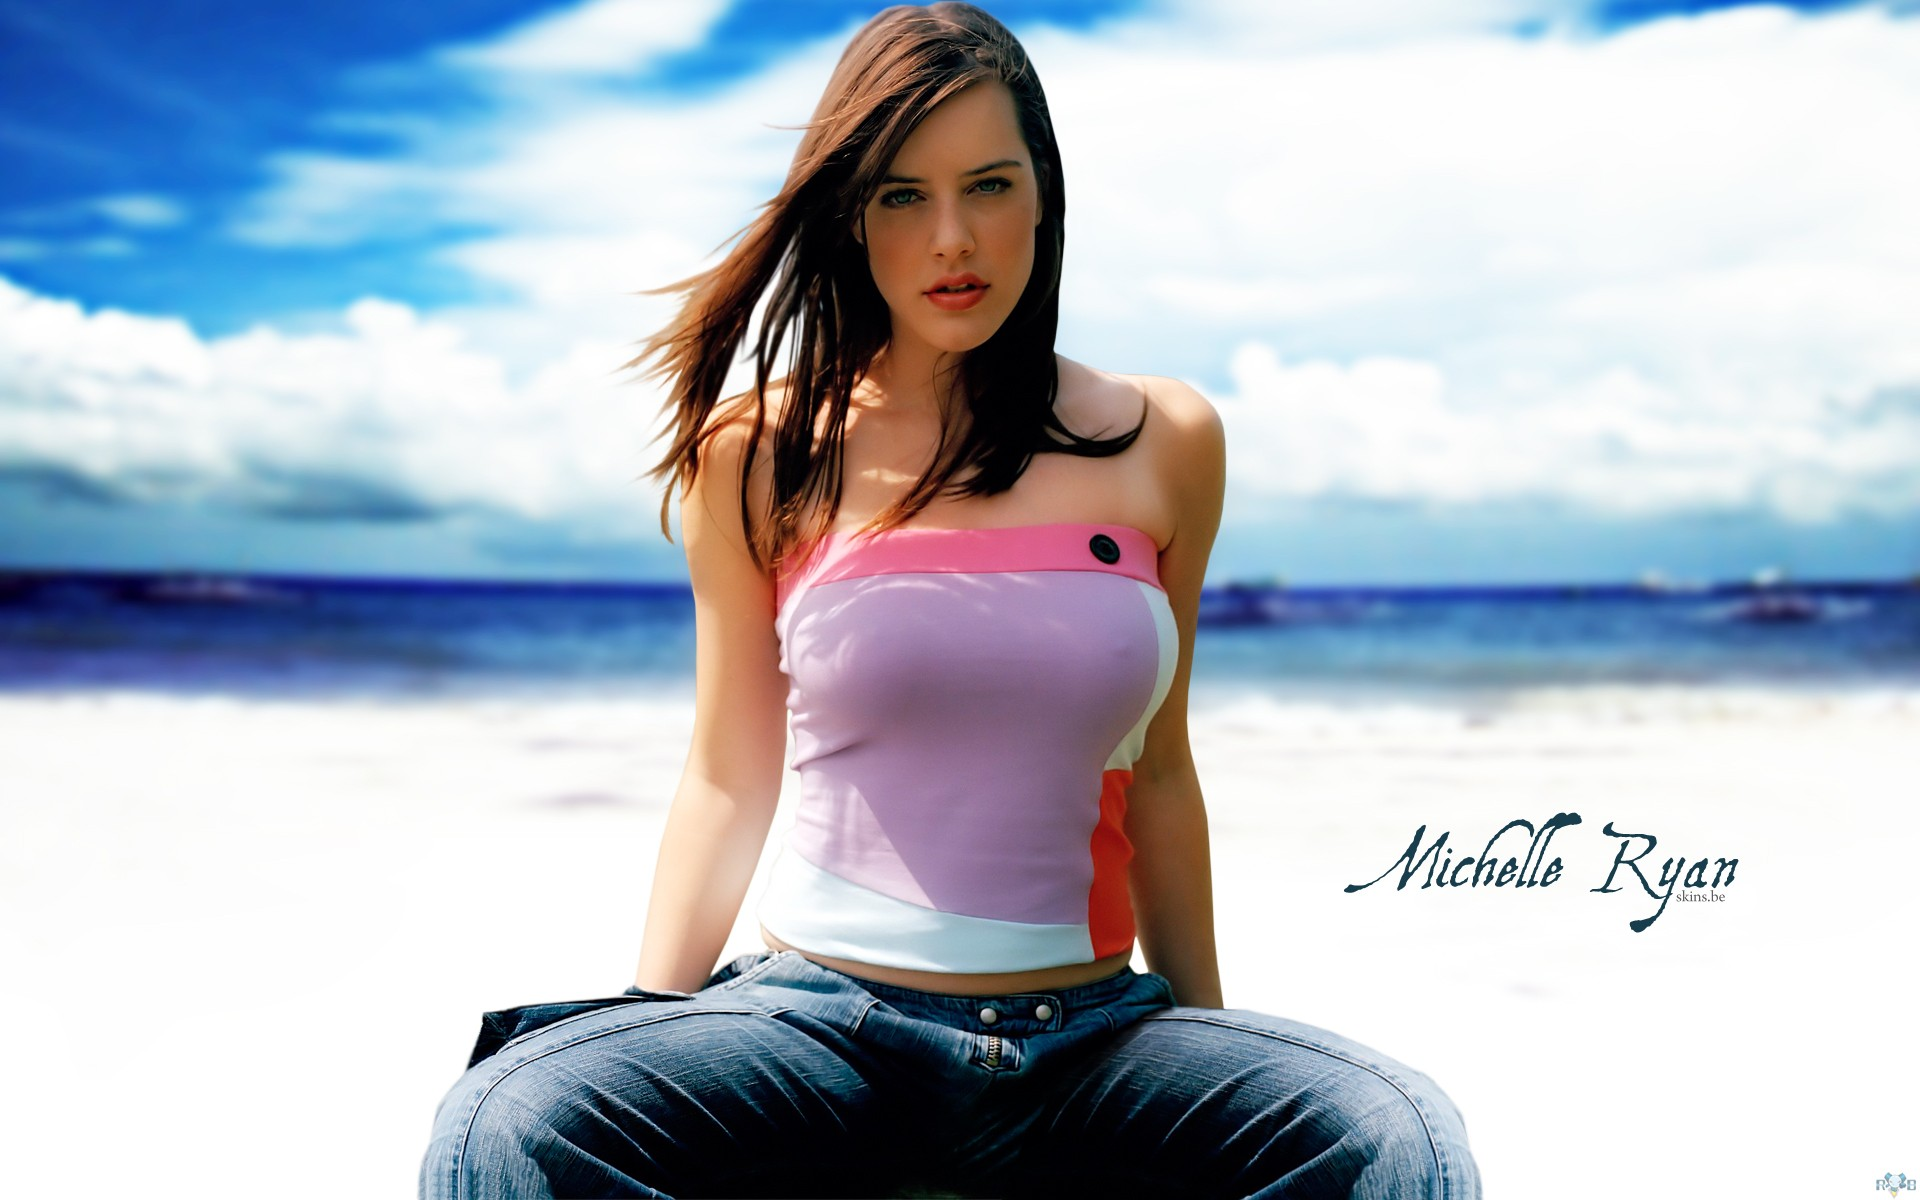 New Girl Wallpaper Full Hd Michelle Ryan Wallpapers Hd Desktop And Mobile Backgrounds